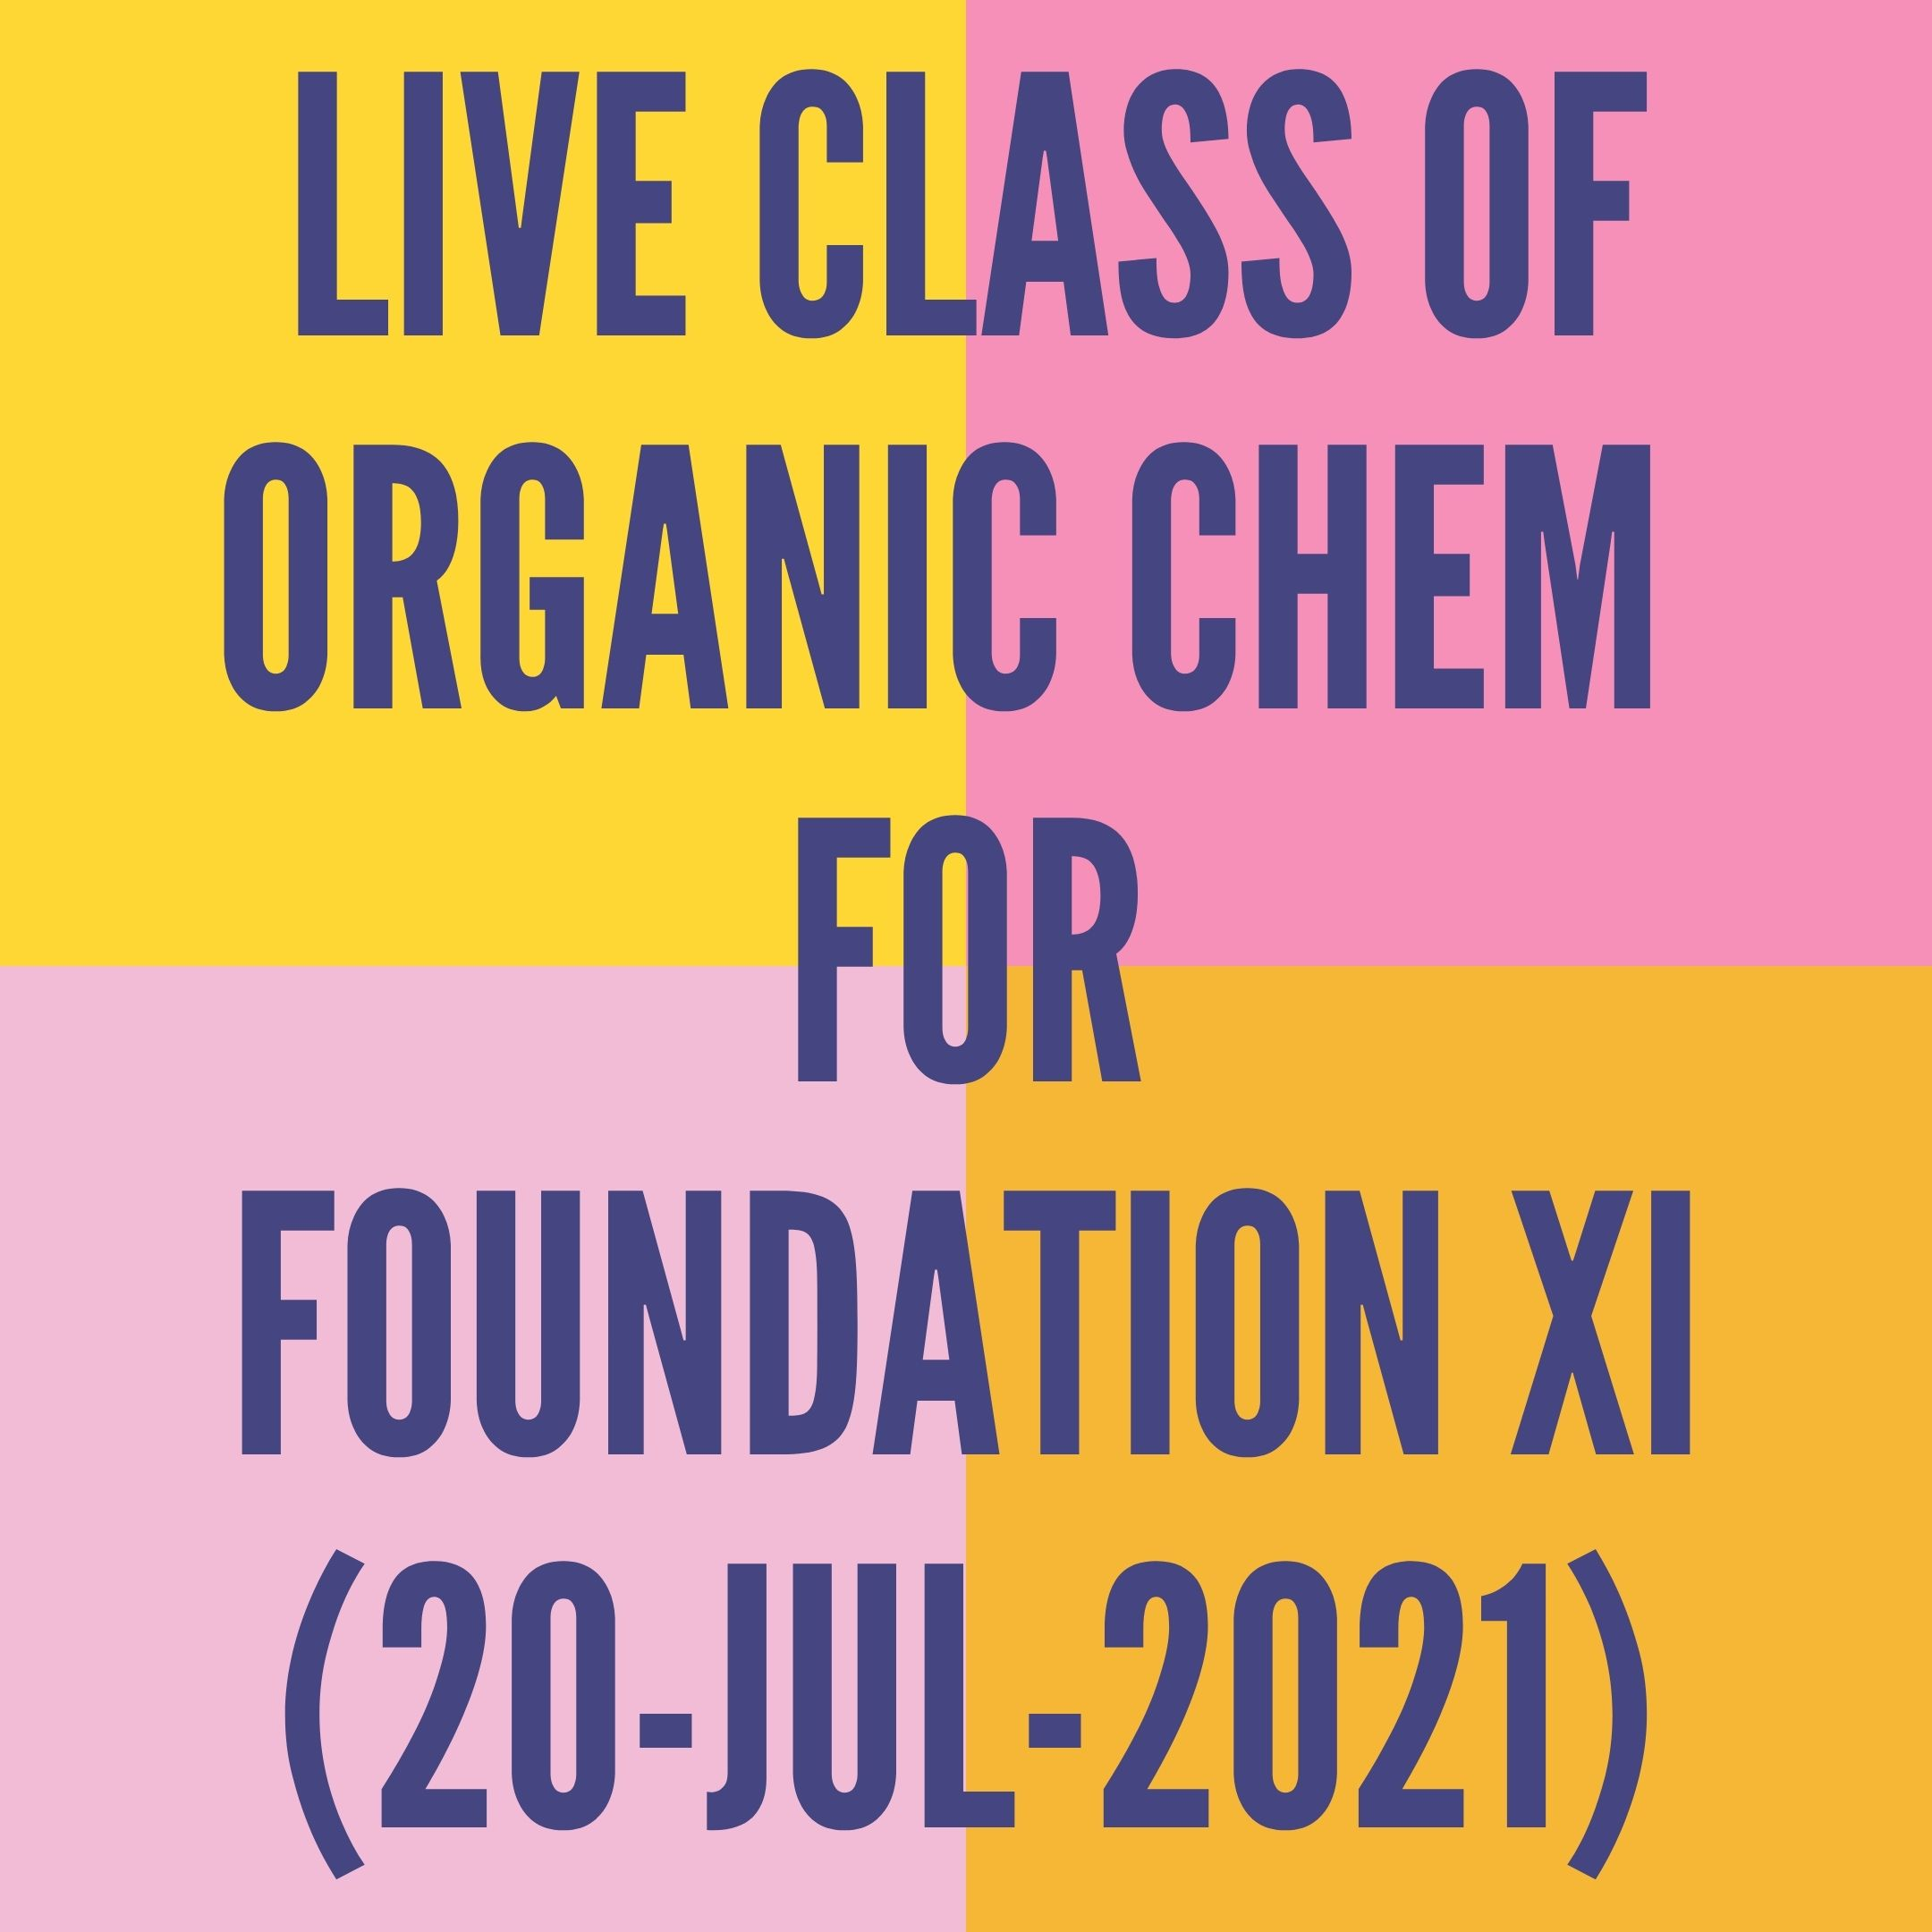 LIVE CLASS OF ORGANIC CHEMISTRY FOR FOUNDATION XI (20-JUL-2021) NOMENCLATURE